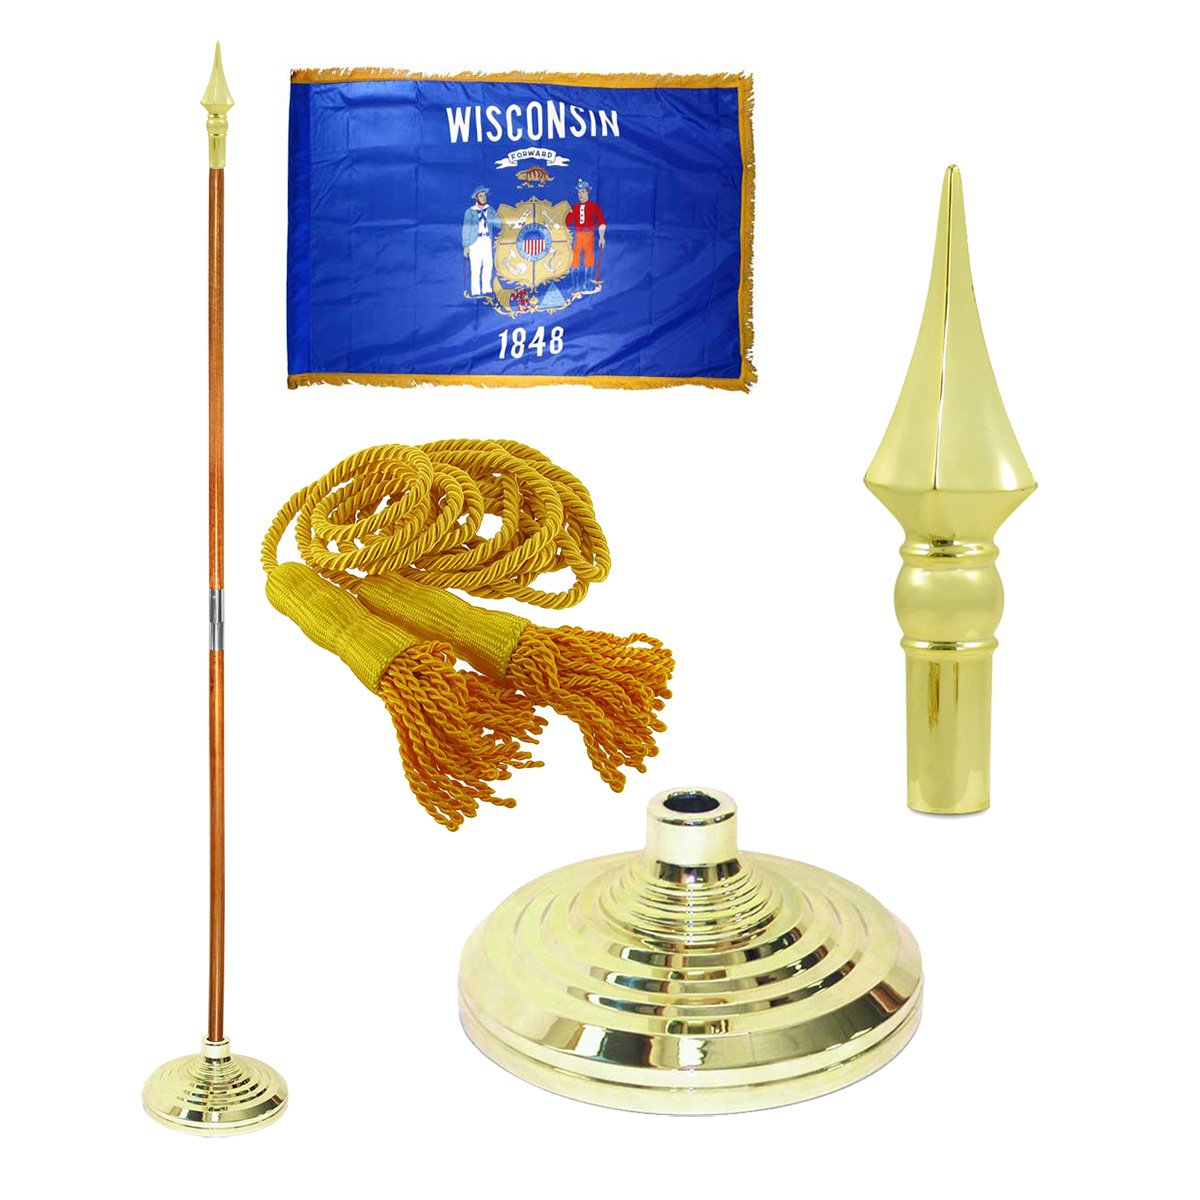 Wisconsin 3ft X 5ft Flag, Flagpole, Base, and Tassel (8 Ft Oak Pole, Plastic Spear) by Online Stores Inc